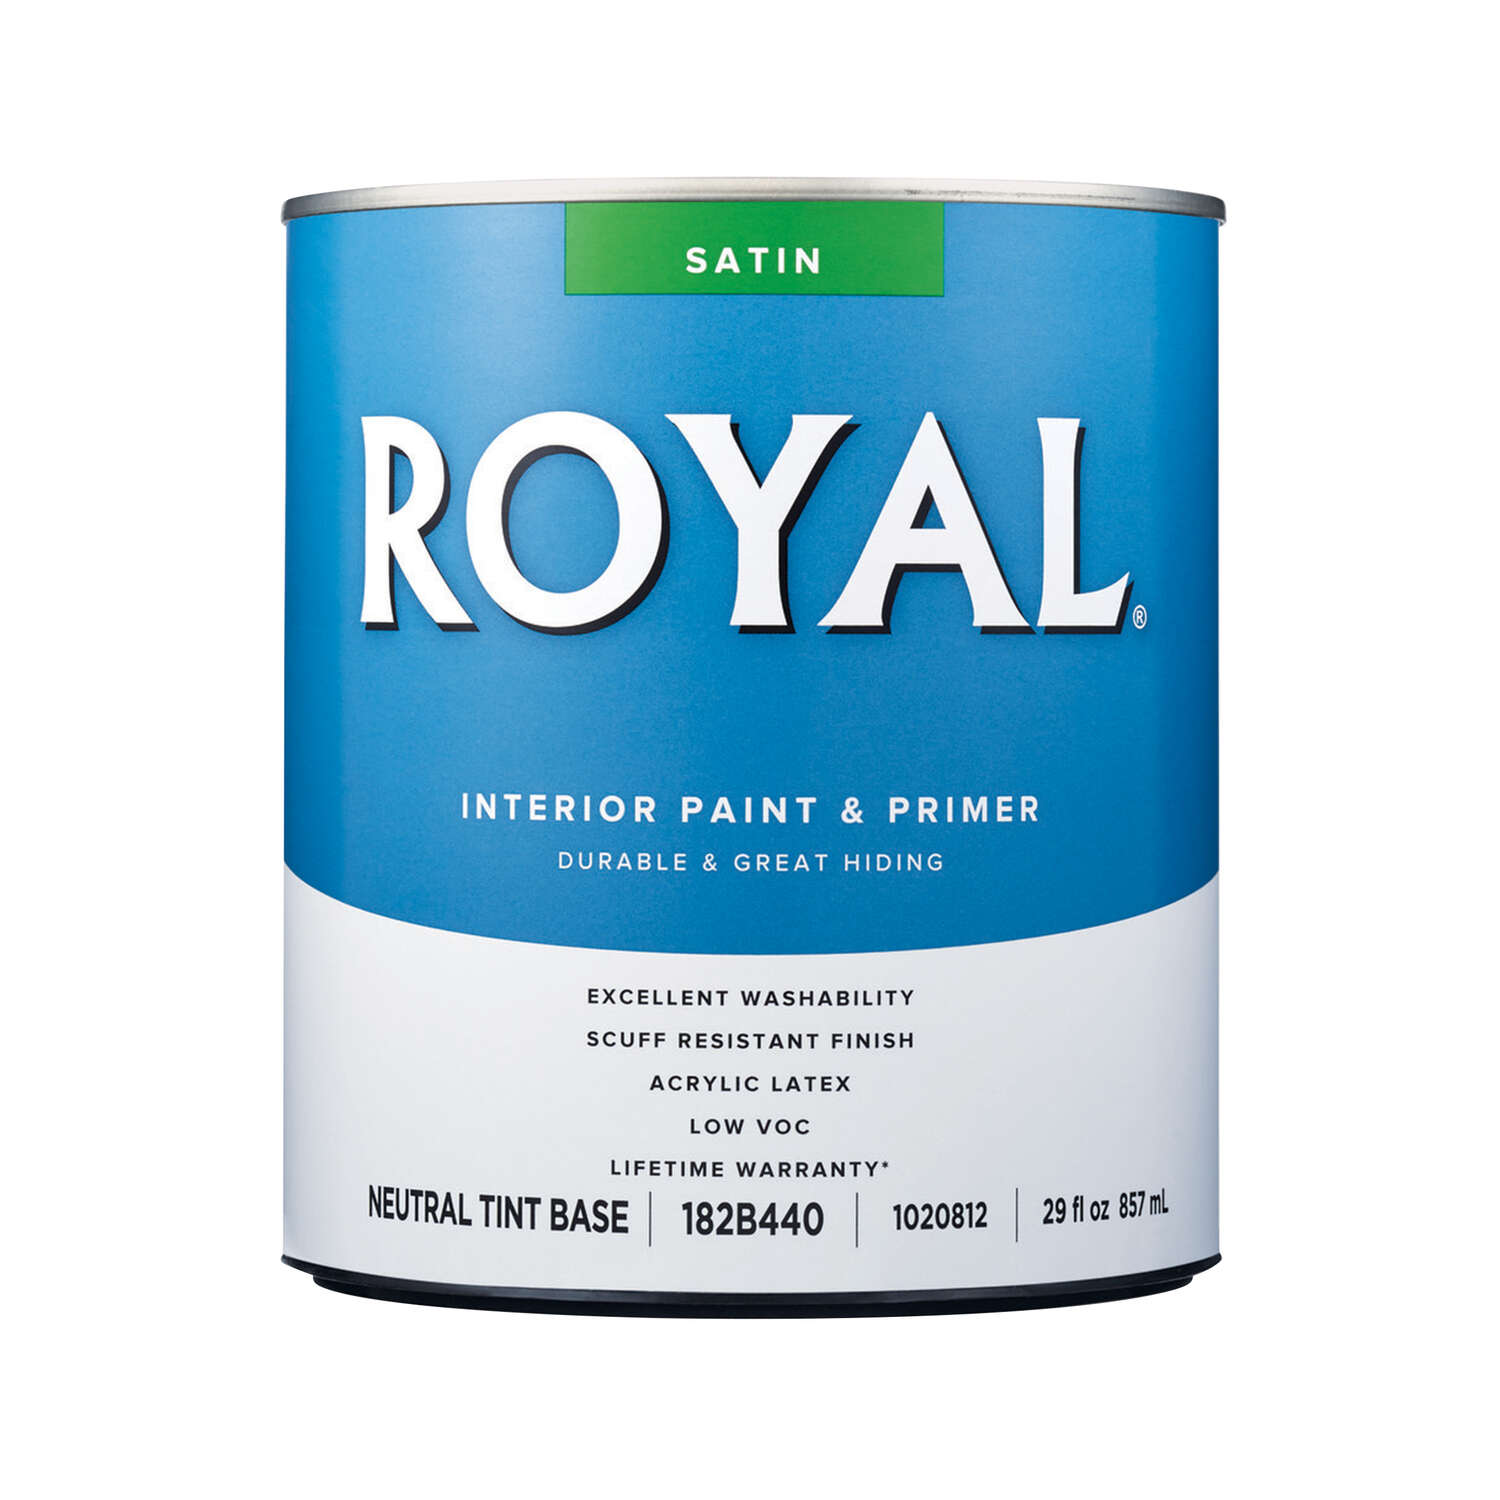 Royal  Satin  Tint Base  Neutral Base  Acrylic Latex  Paint  Interior  1 qt.